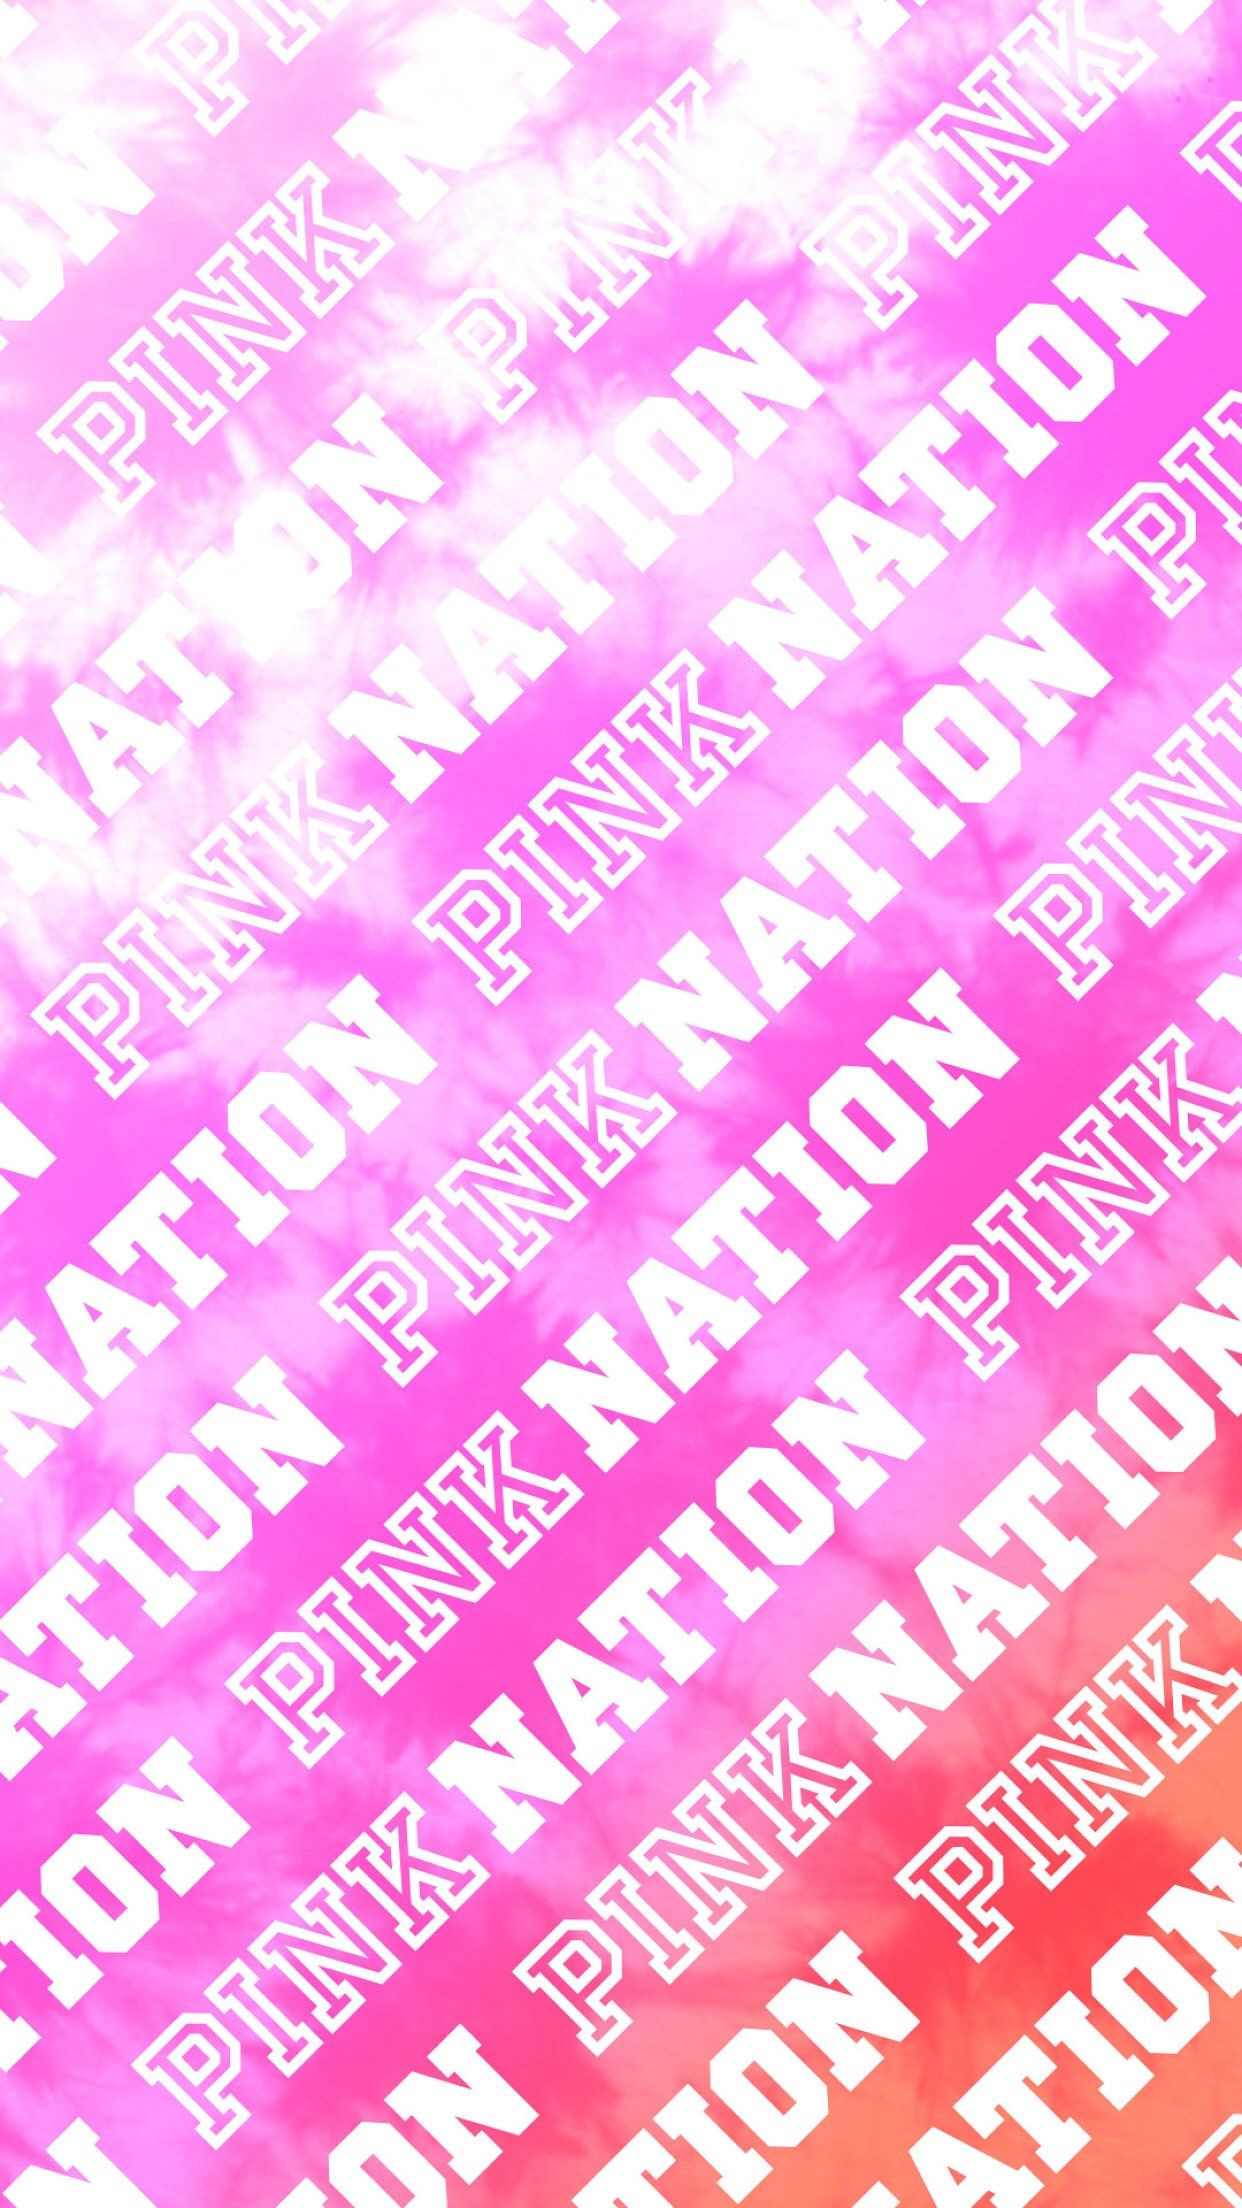 Pin by Giovanna Flores on PINK NATION Vs pink wallpaper